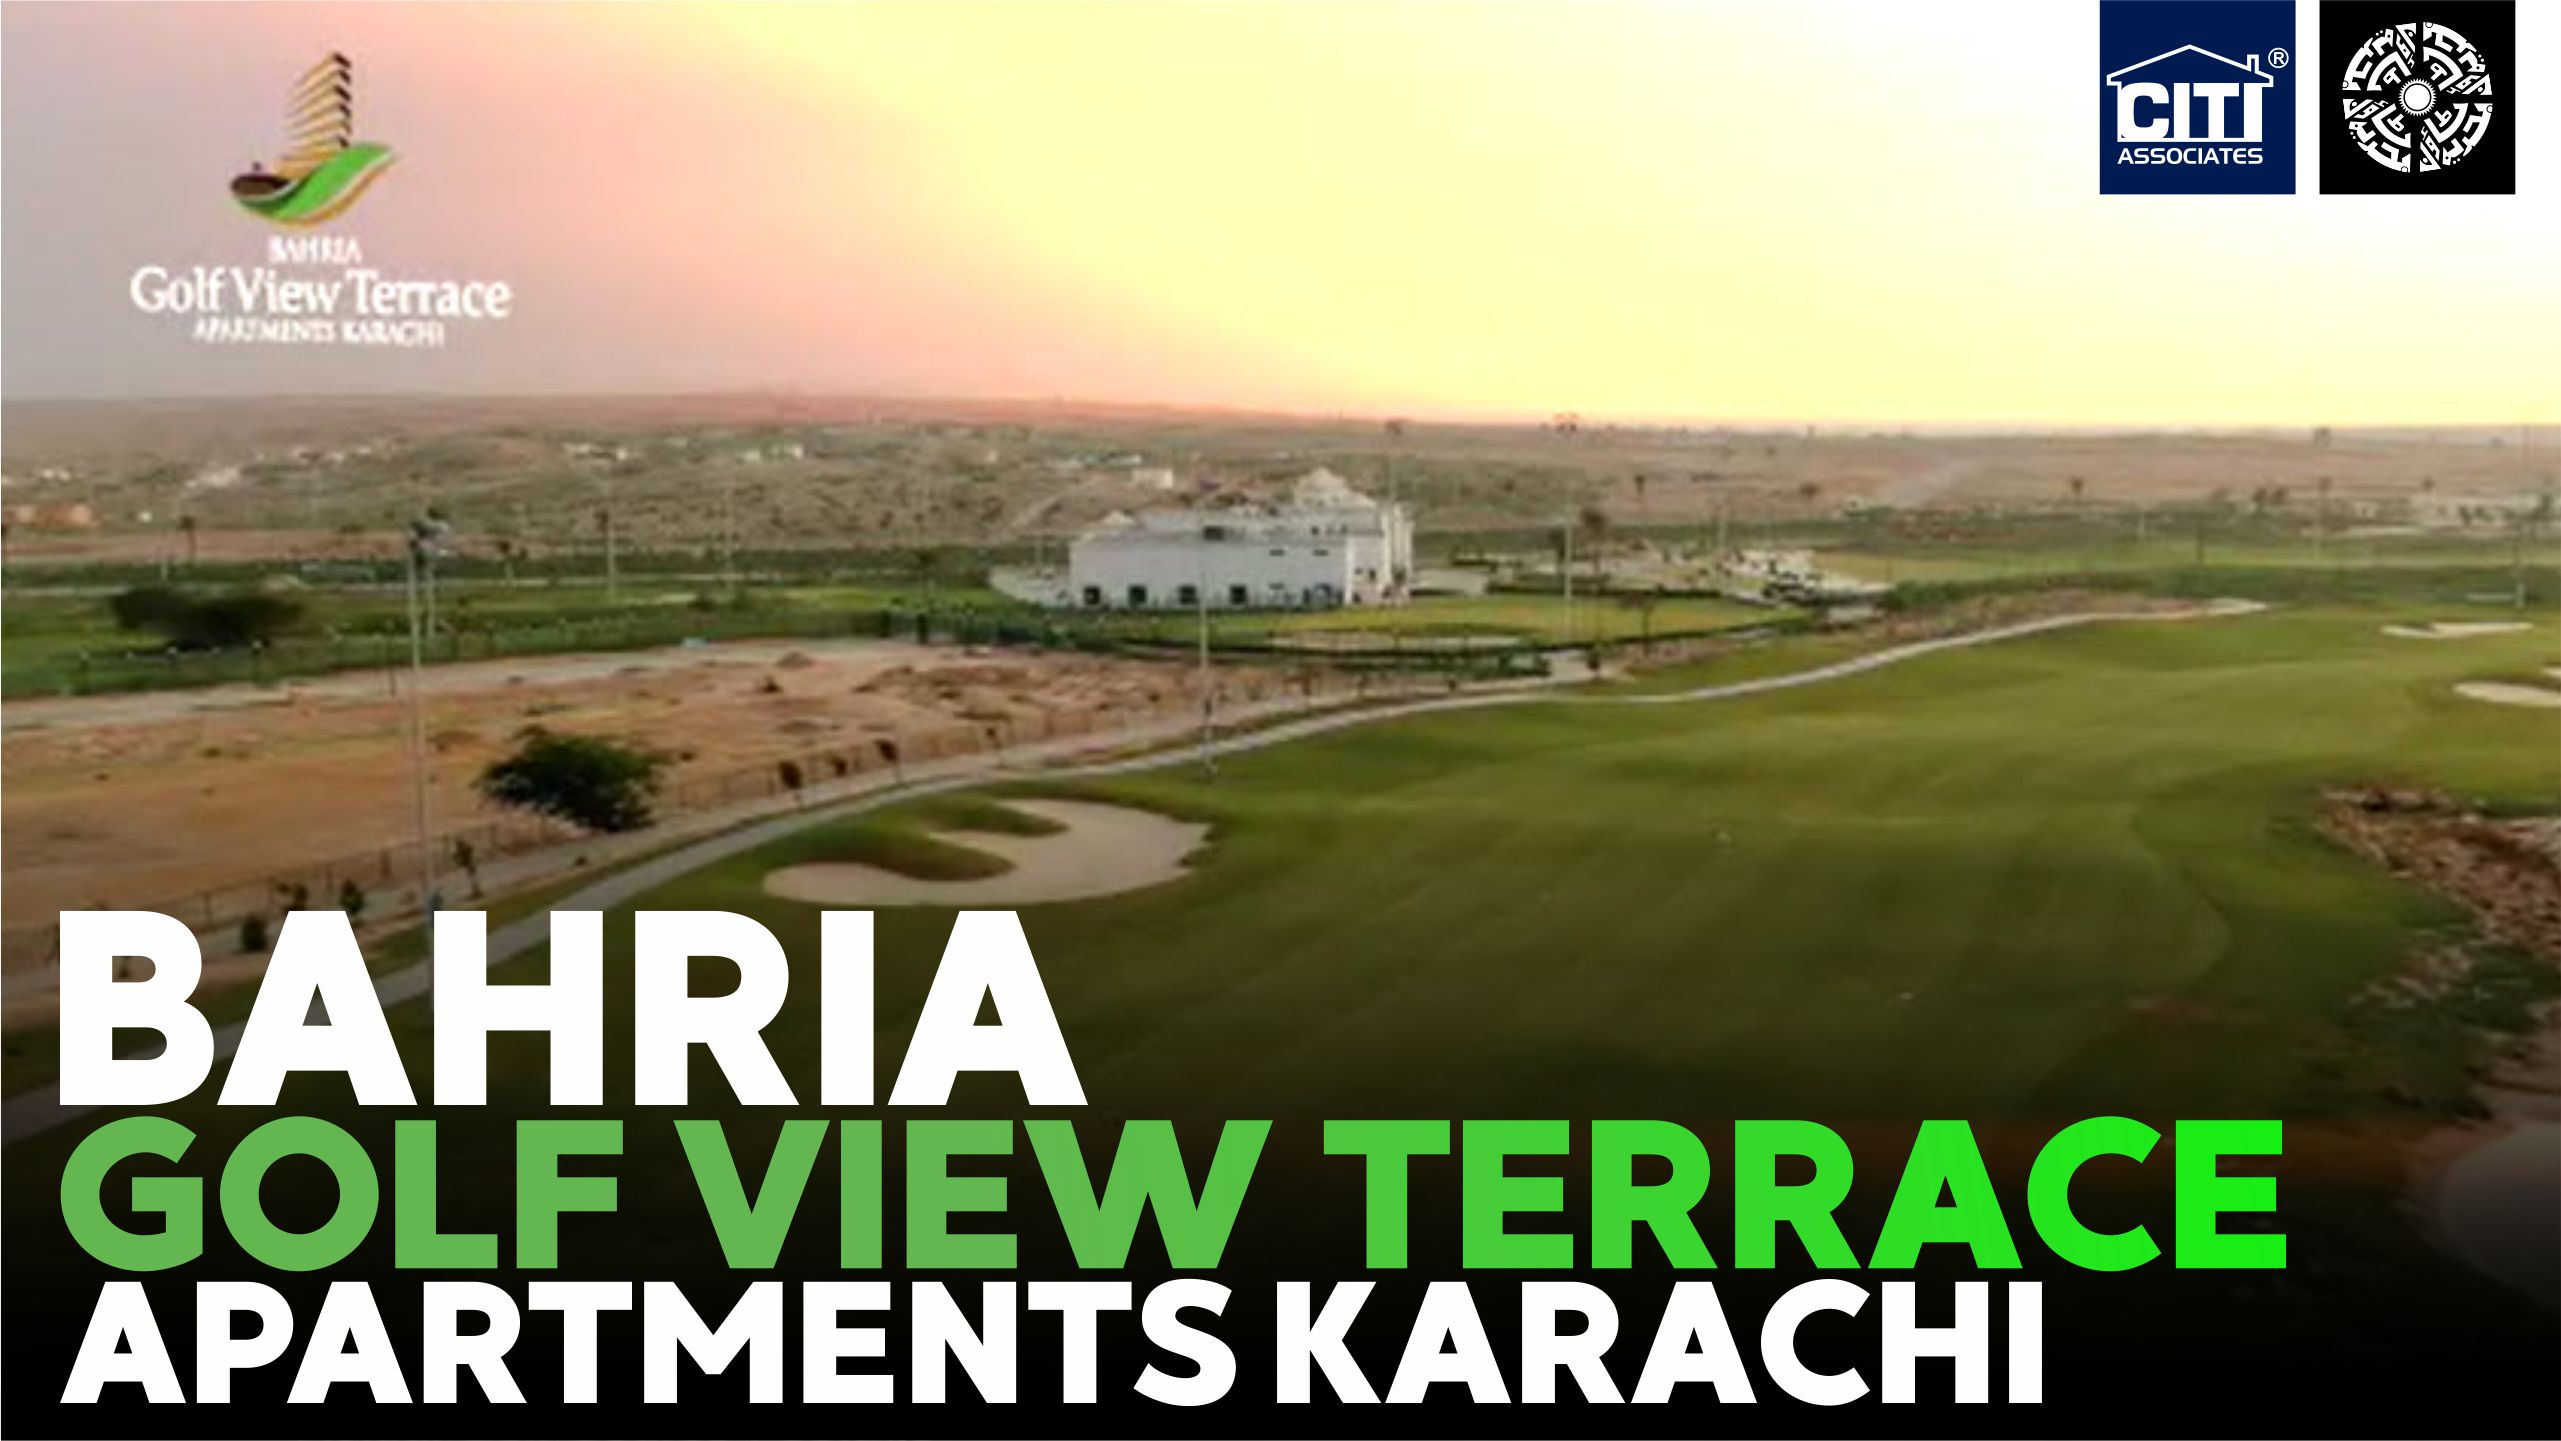 Bahria Golf View Terrace Apartments Karachi | Bahria Town Karachi